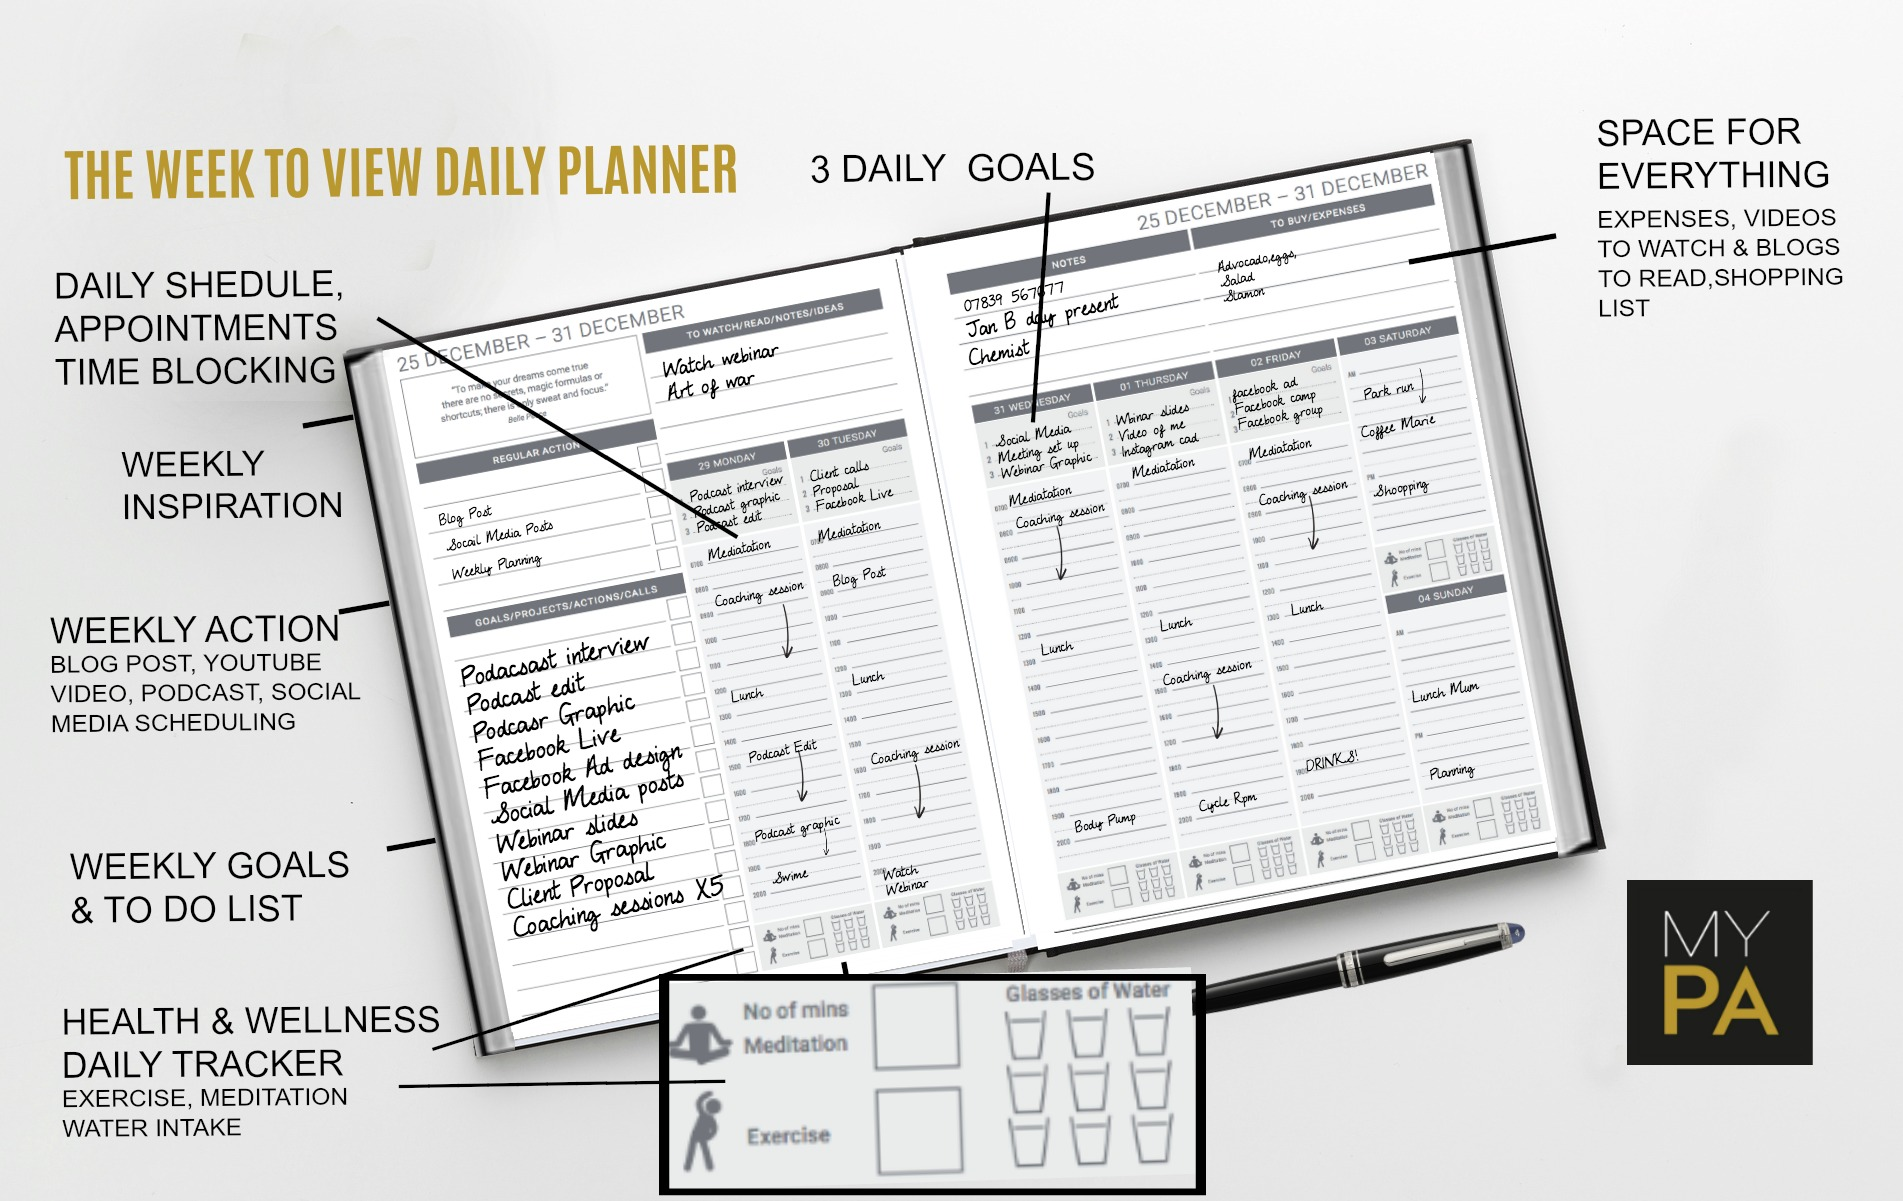 The weekly planner is designed so you can plan and see everything at a glance. There is a space for every goal, task, idea thought and intention. No need for additional note books or journals